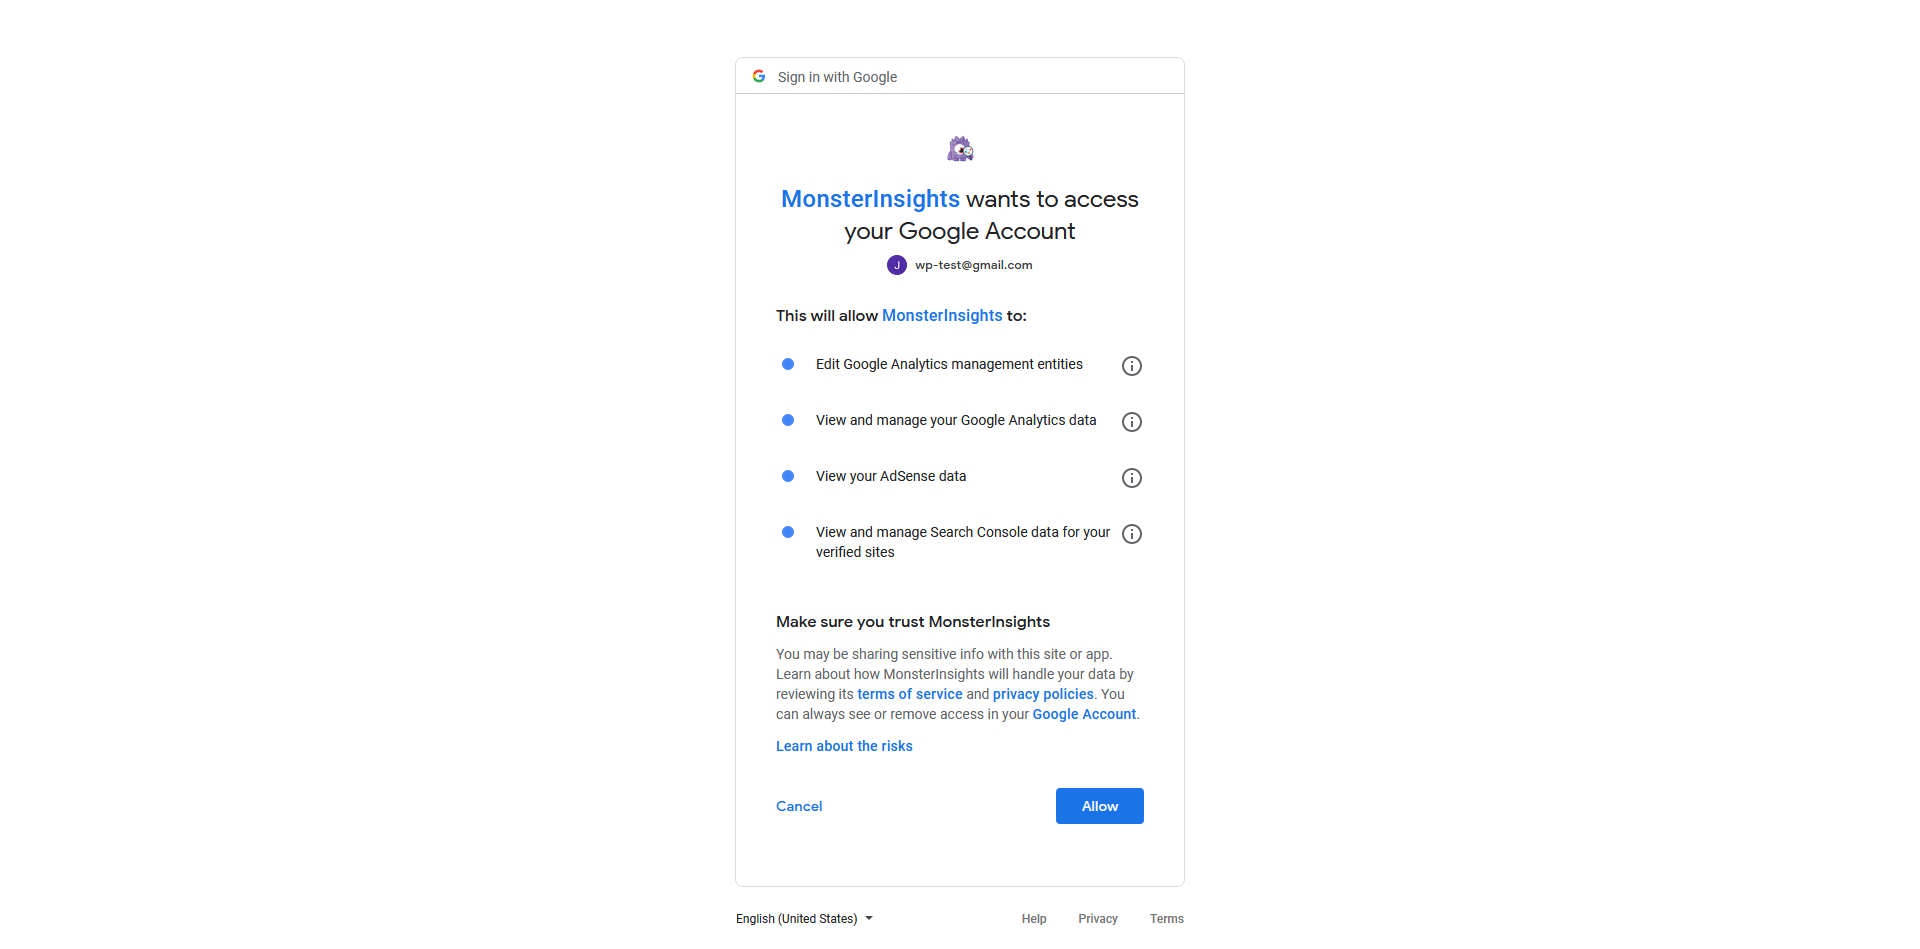 MonsterInsights wants to access your Google Account